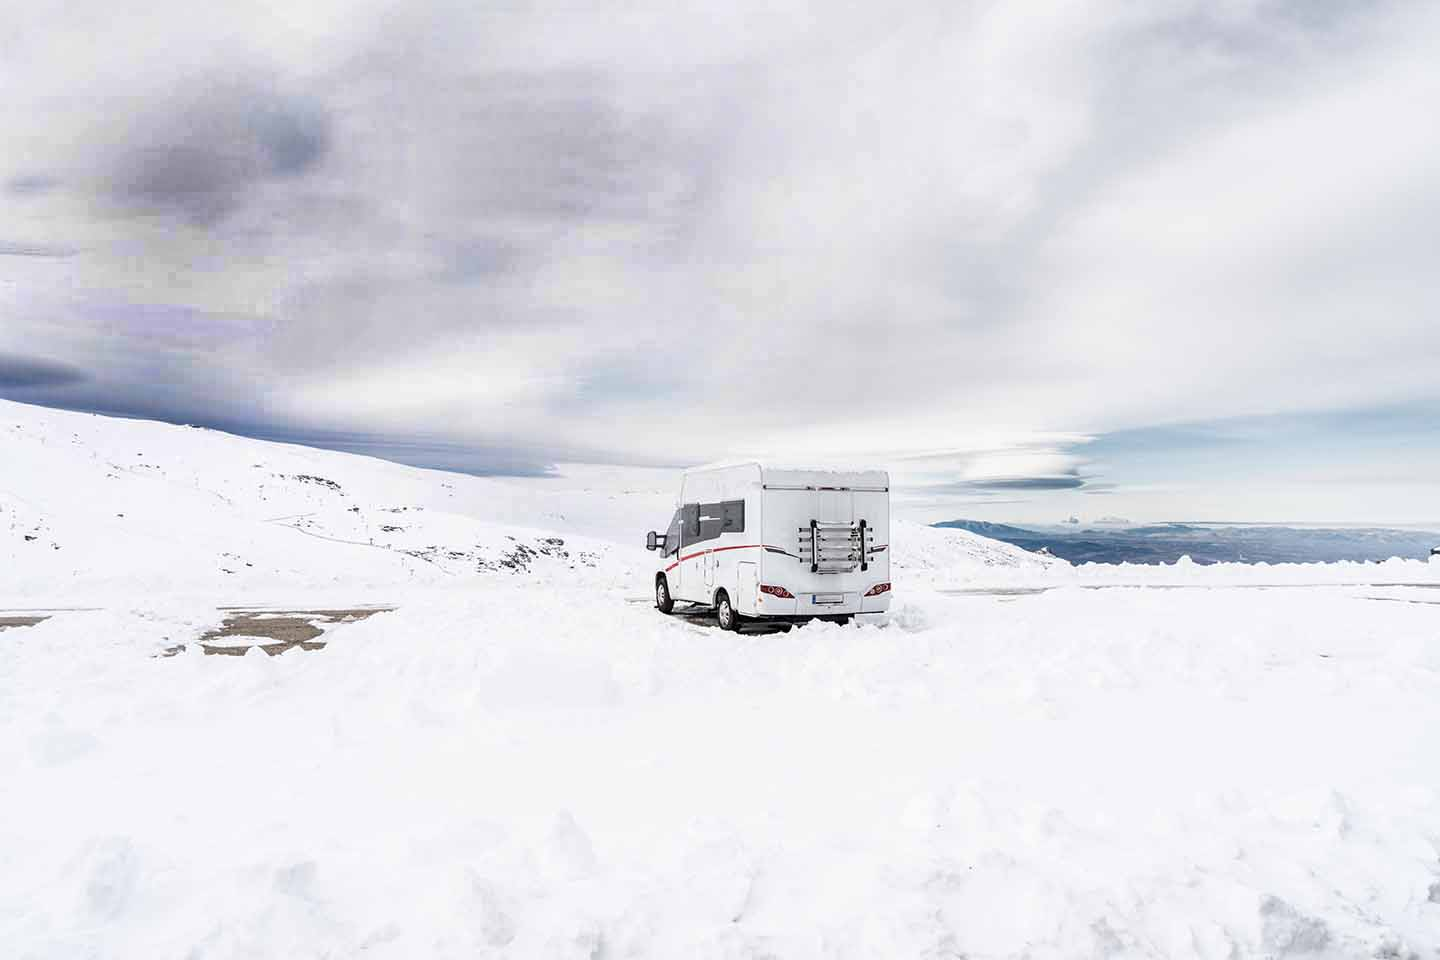 RV in snowfield under dark skies